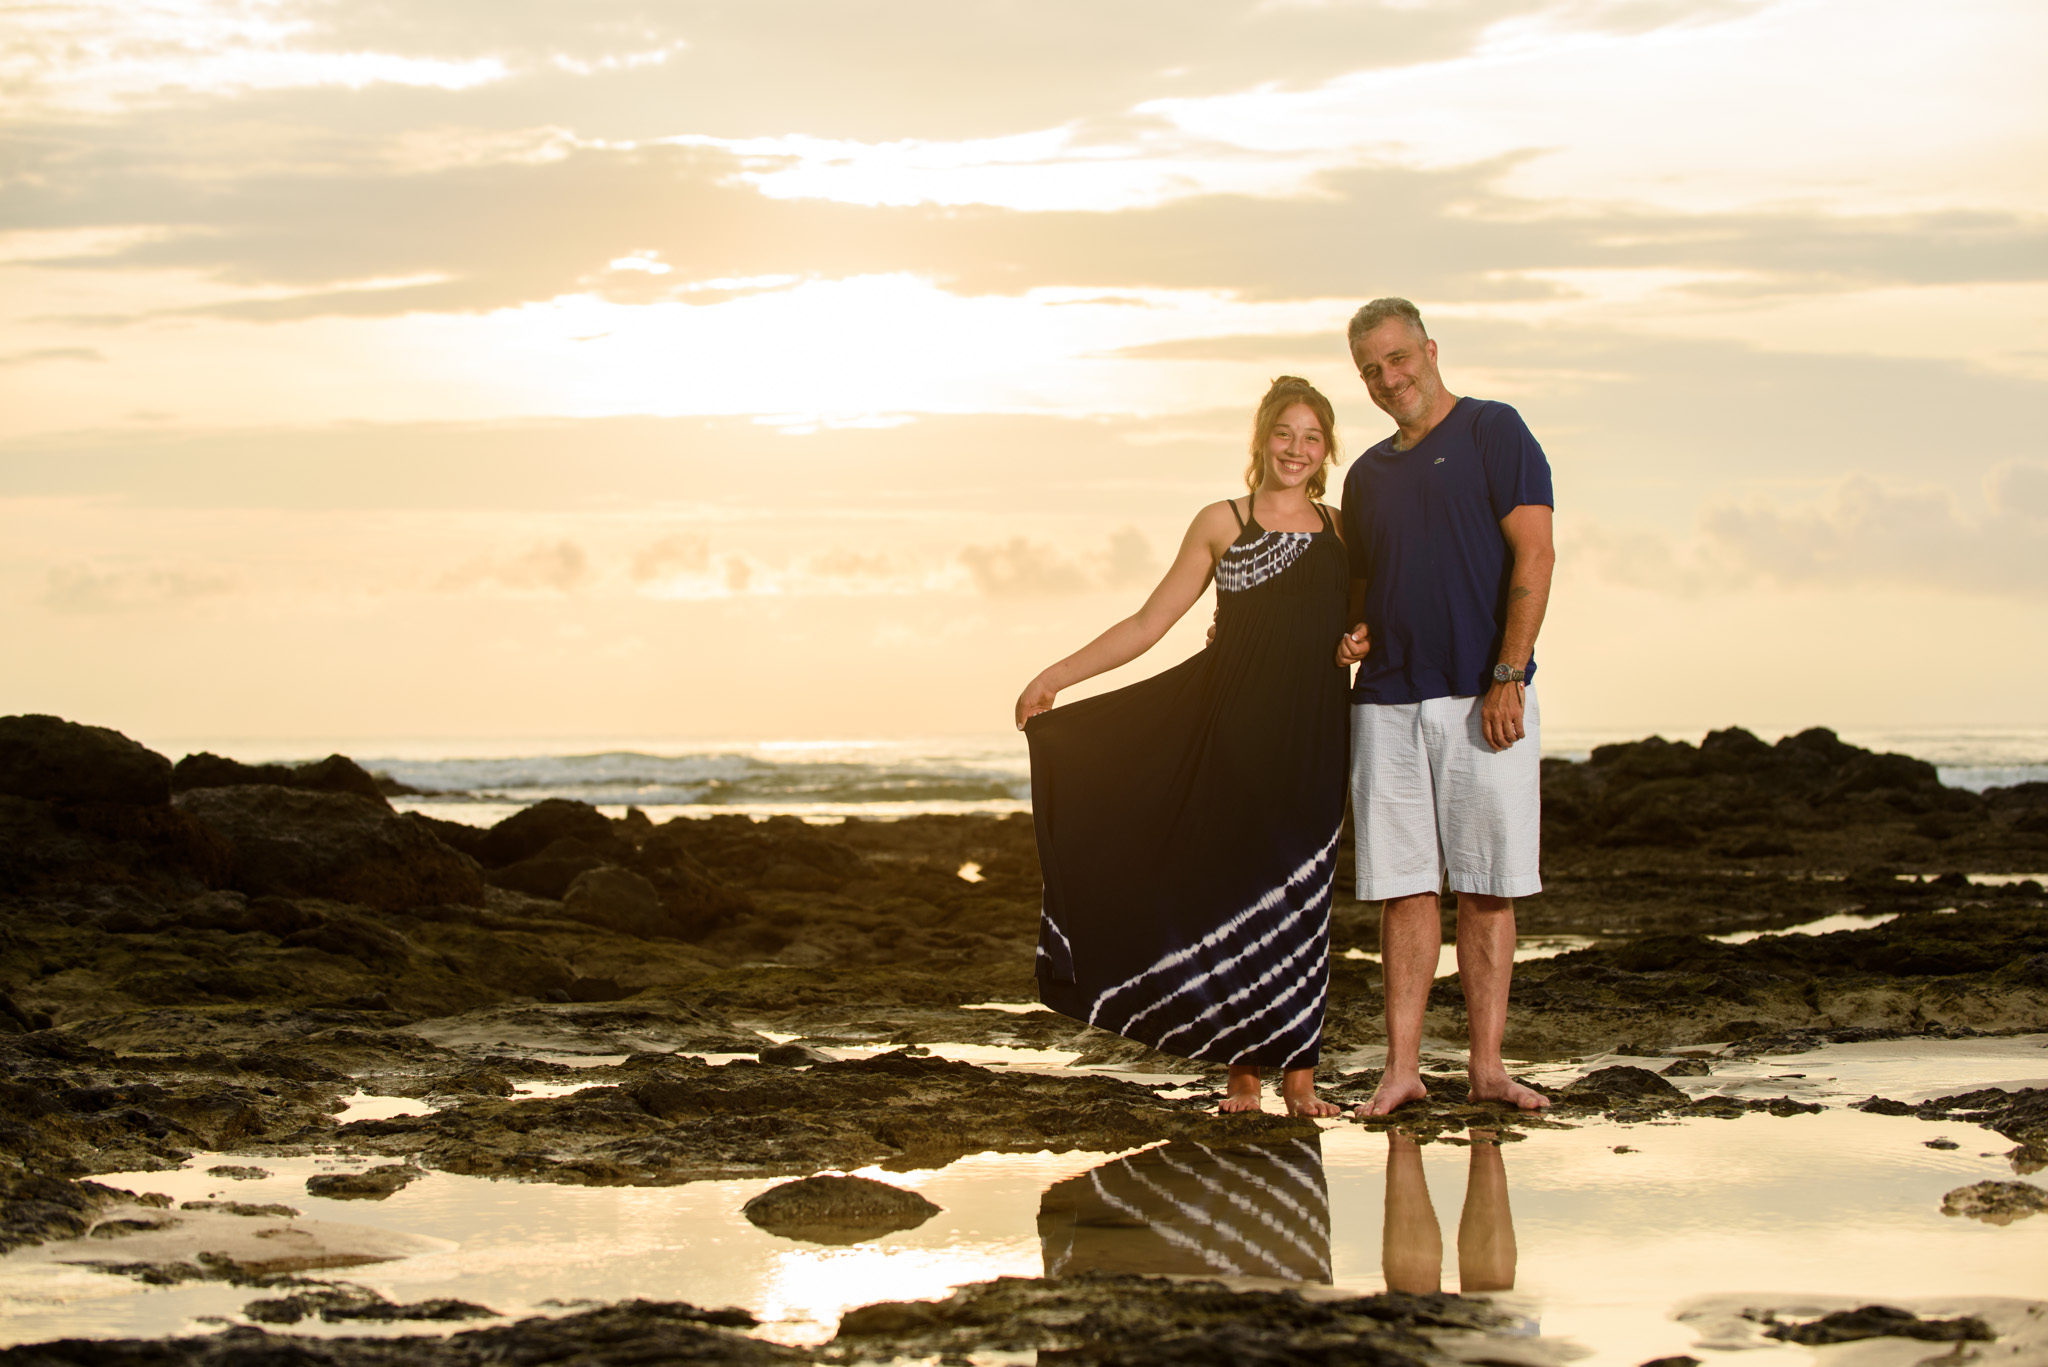 Professional family photos at Hacienda Pinilla